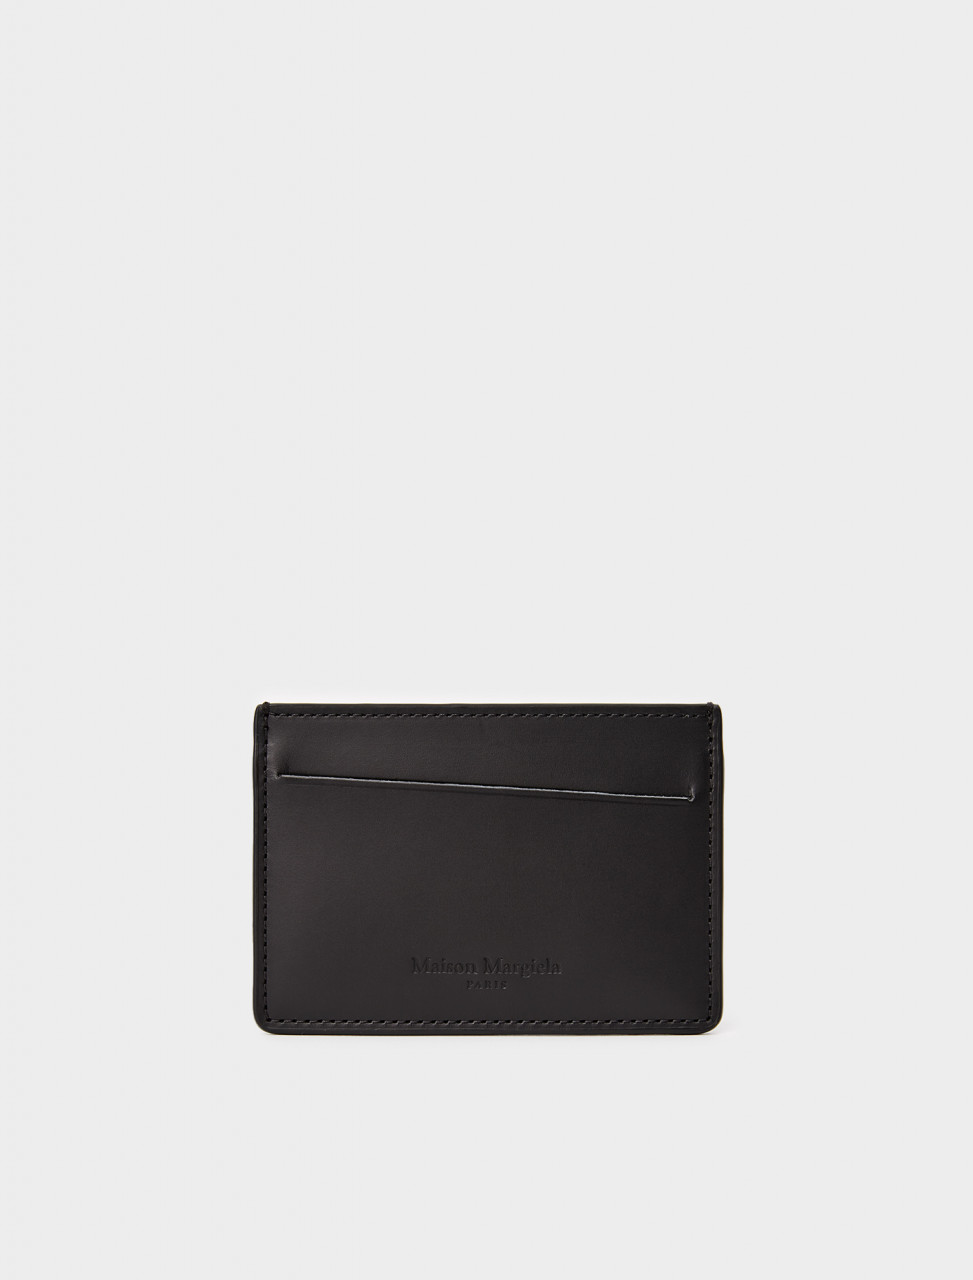 256-S35UI0449-PS935-T8013 MAISON MARGIELA CARD HOLDER WALLET BLACK